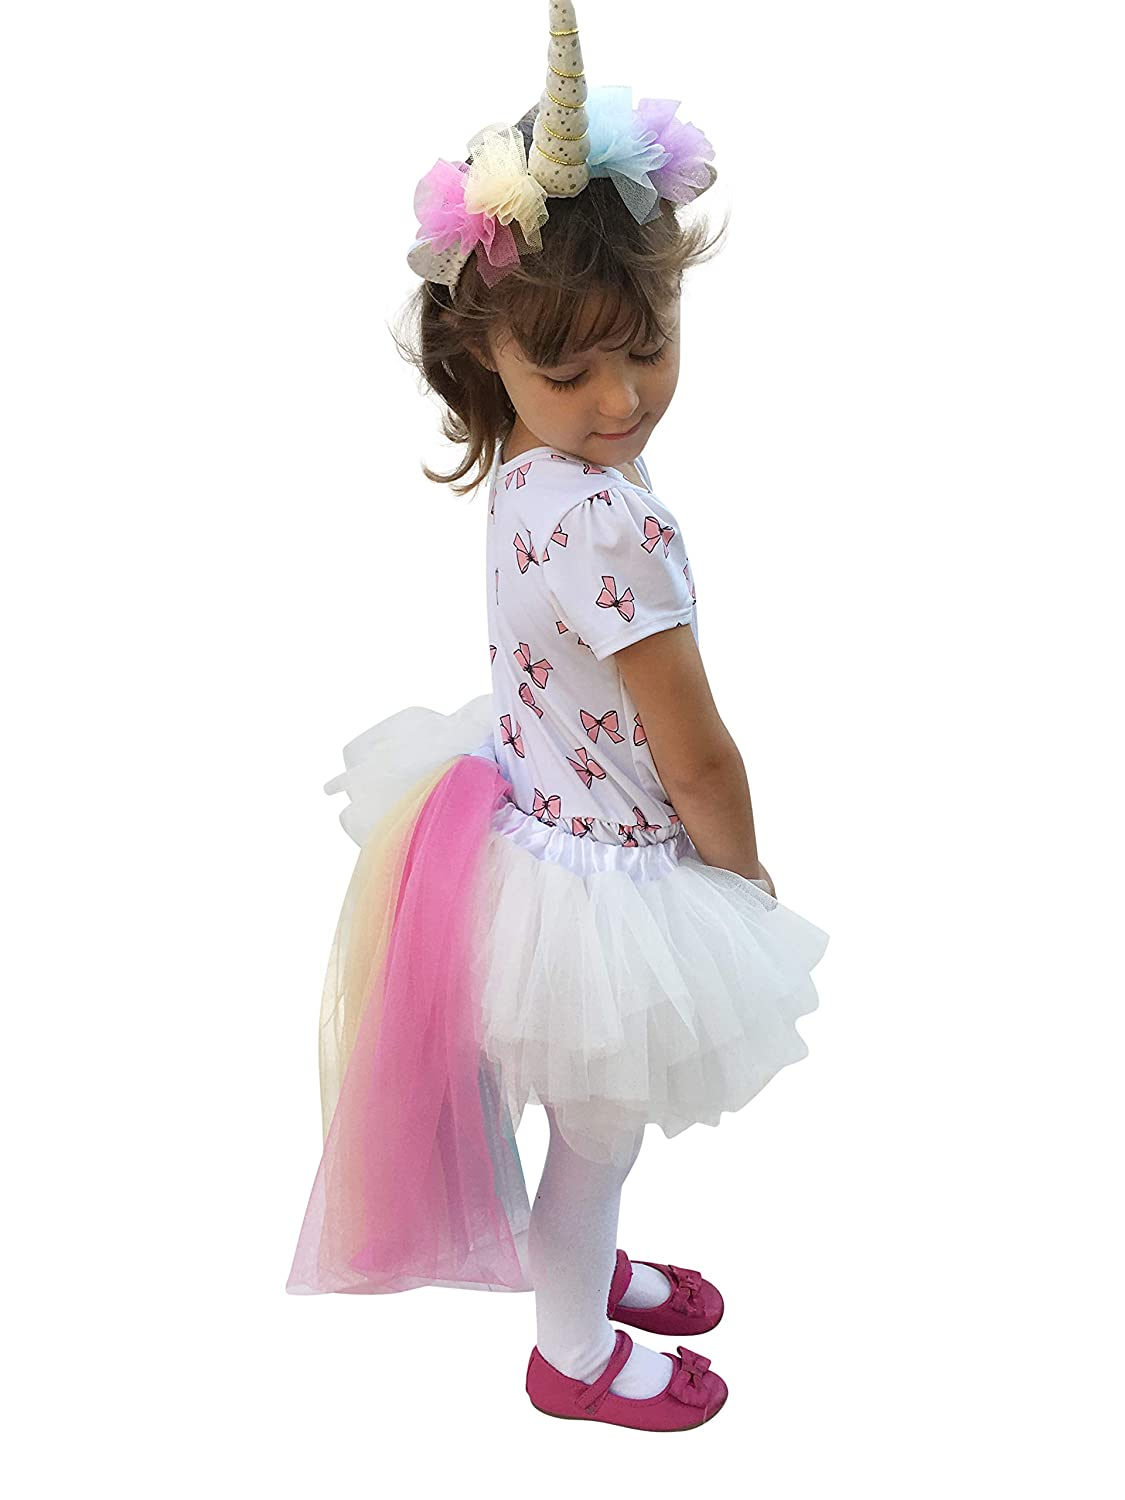 00e0b24b2 Madam Posy Design Girls Unicorn Costume Horn Headband And Tail Dress ...